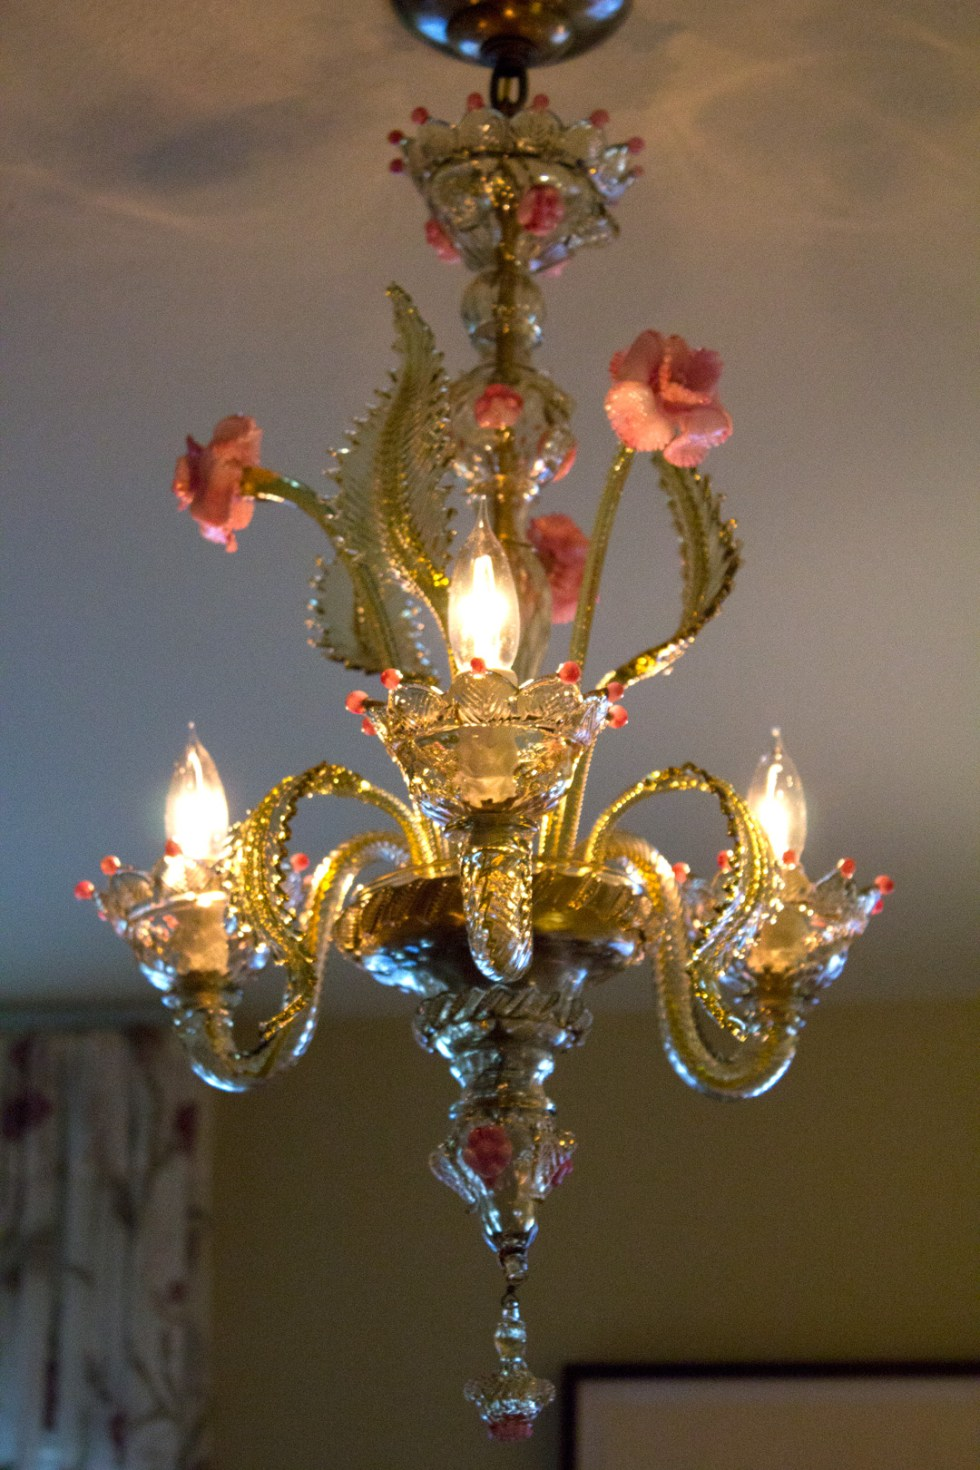 (above) I purchased this Venetian chandelier in Murano, Italy back in 2001. Keep in mind, that I did this before I knew they were to become a fashionable replacement to the traditional crystal chandelier. I spent two weeks in Venice exploring as much as I could—one week for La Biennale di Venezia and another week for everything else. This chandelier was purchased at Vetreria Colonna Fornace. It was one of the first glass shops I was to visit, and it was love at first sight.